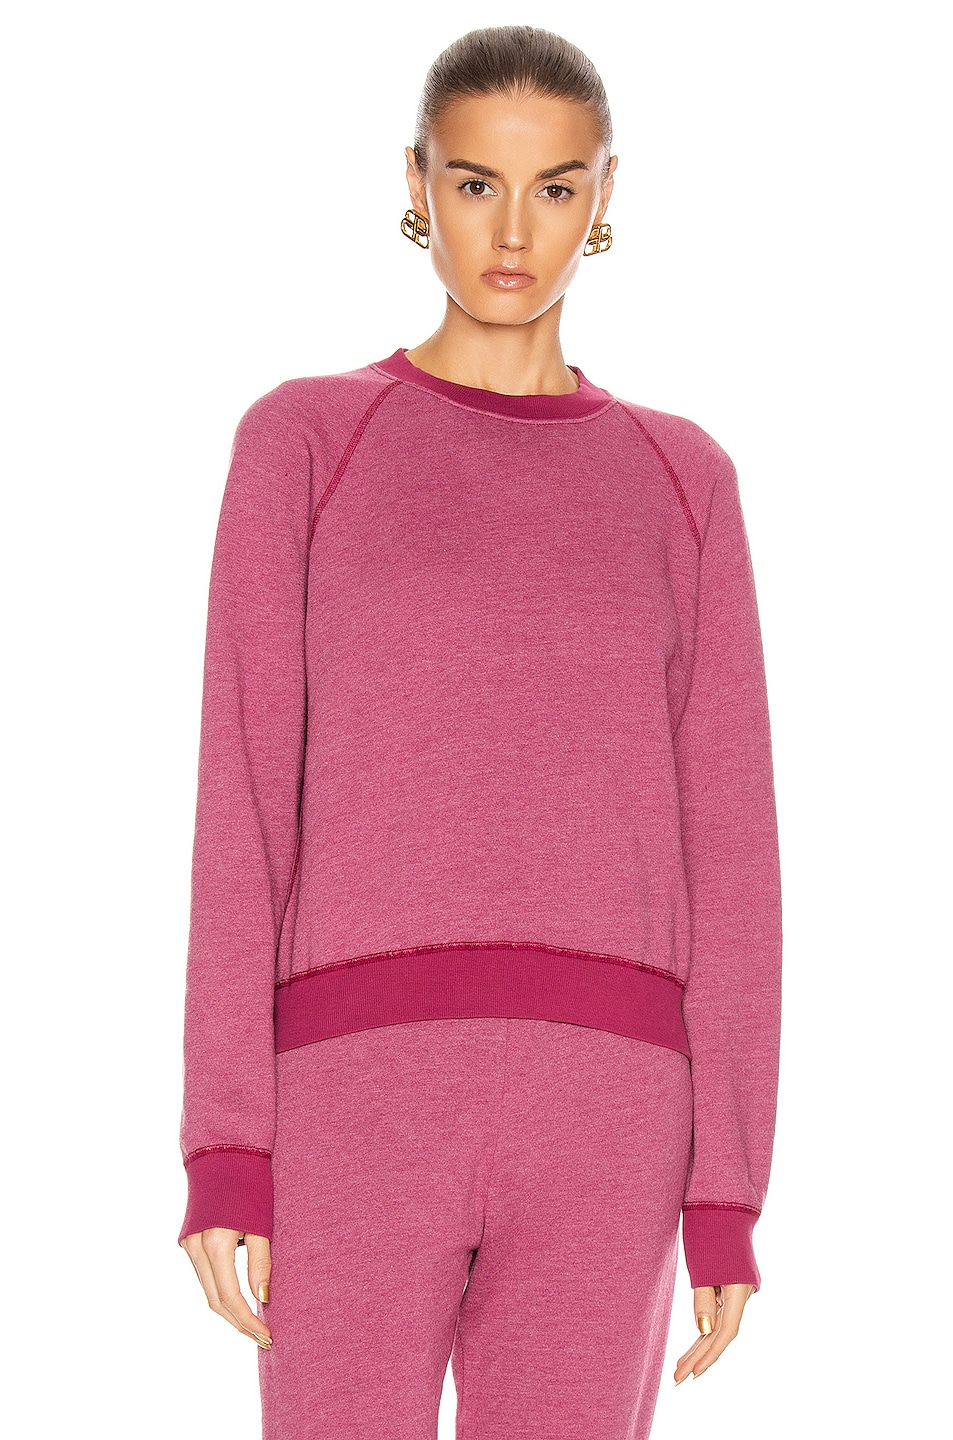 Image 2 of JOHN ELLIOTT Vintage Fleece Crew Sweatshirt in Lambrusco